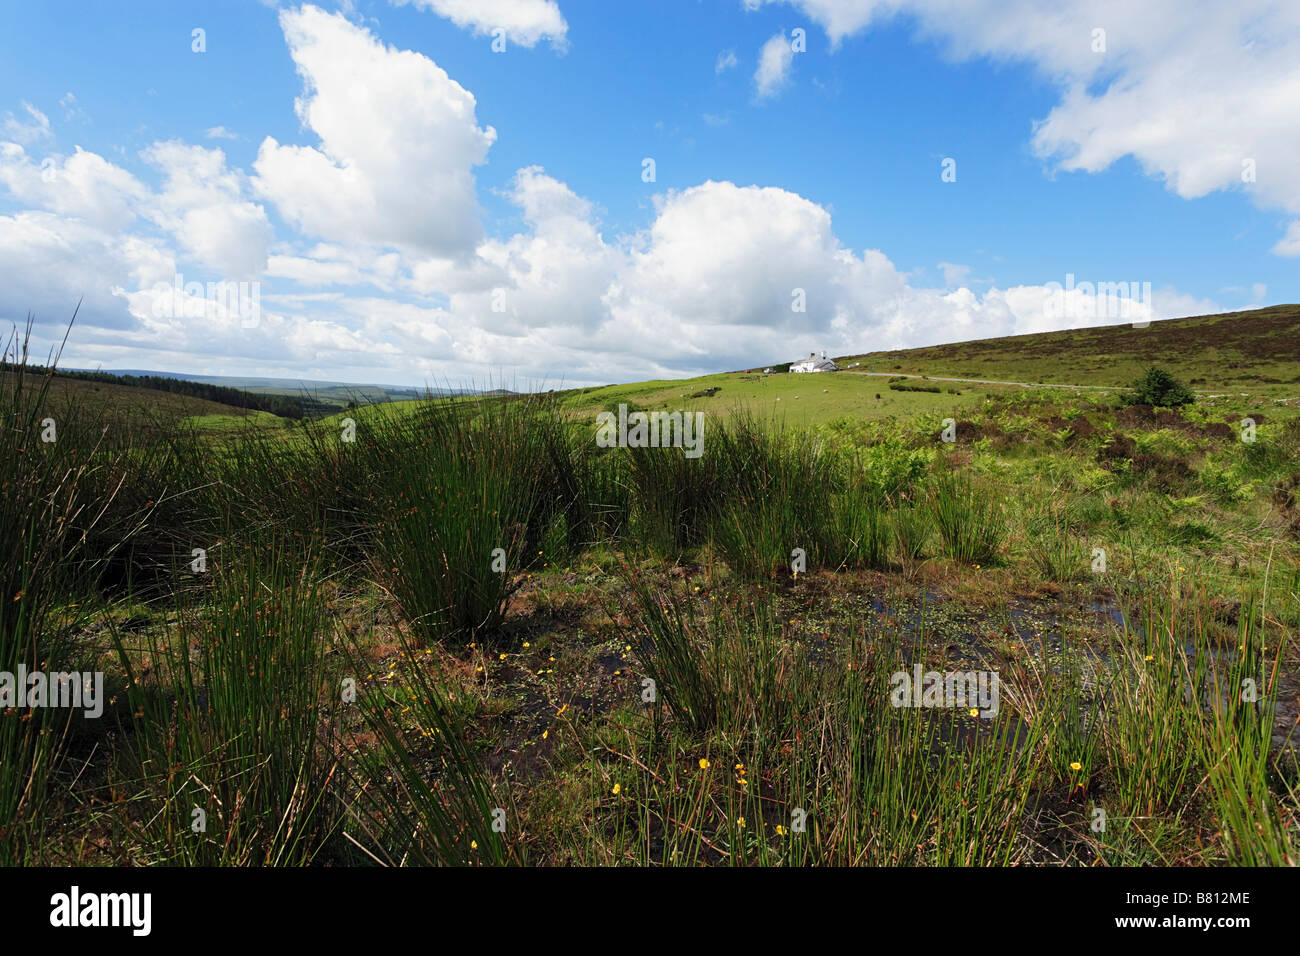 Warren House Inn on a hill Postbridge Dartmoor Devon England United Kingdom - Stock Image